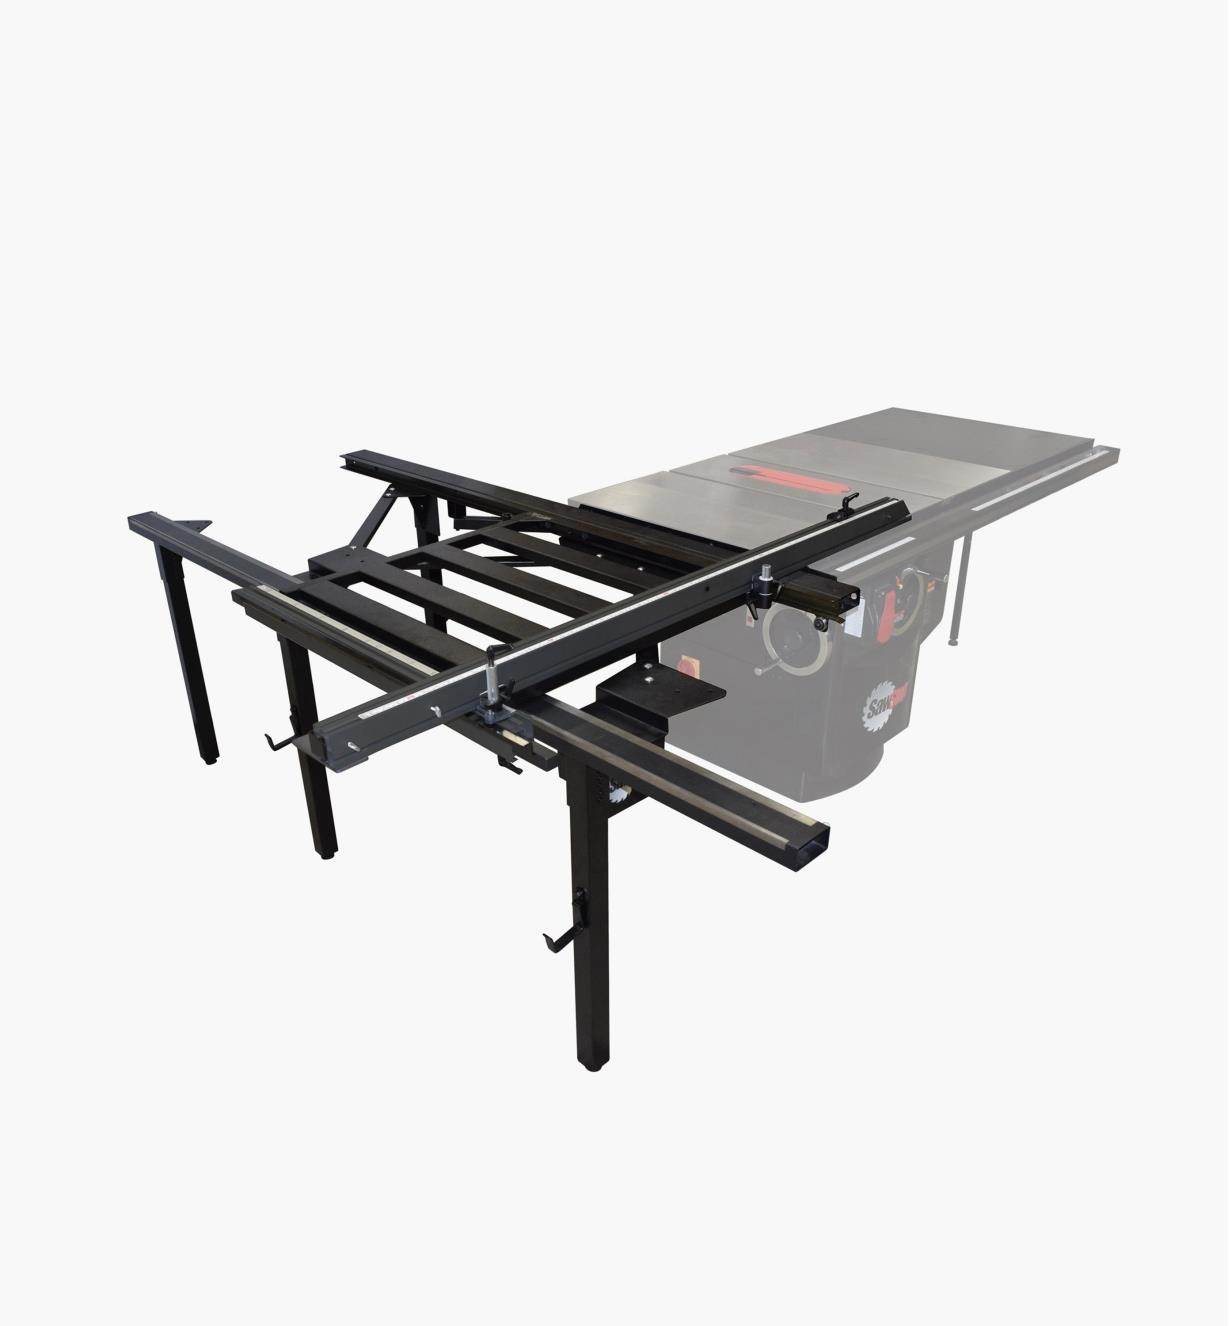 95T0503 - SawStop TSA-SA70 Large Sliding Table